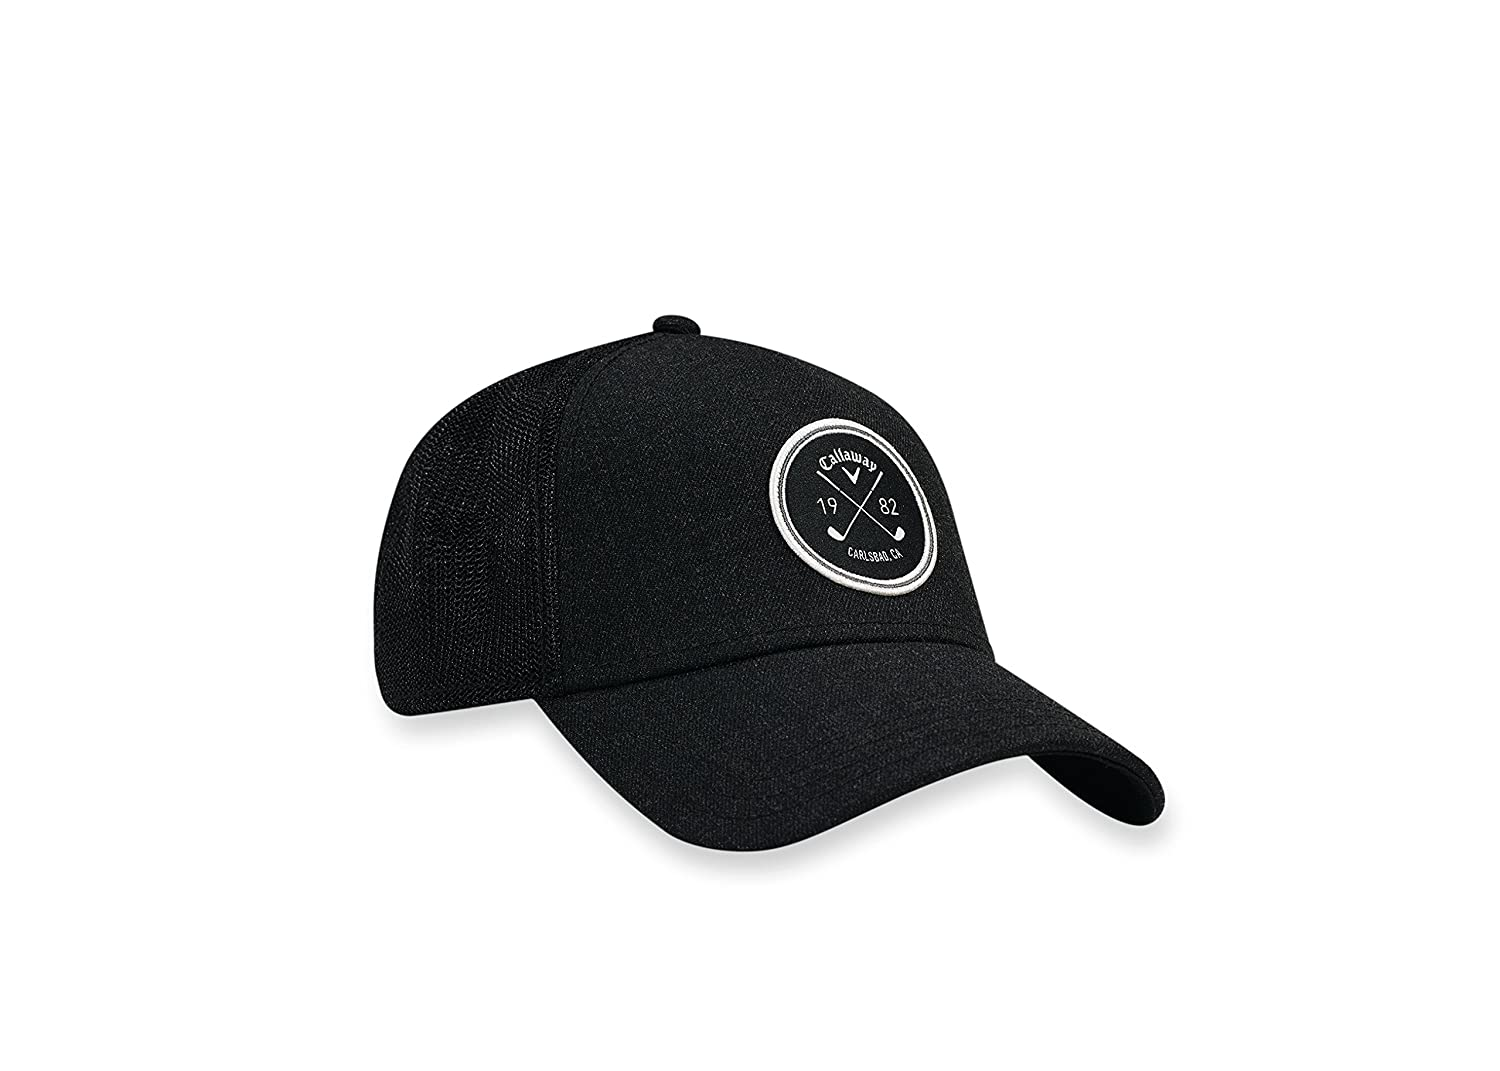 c0eebceb79c Amazon.com : Callaway 2017 Trucker Hat, Black, One Size : Sports & Outdoors